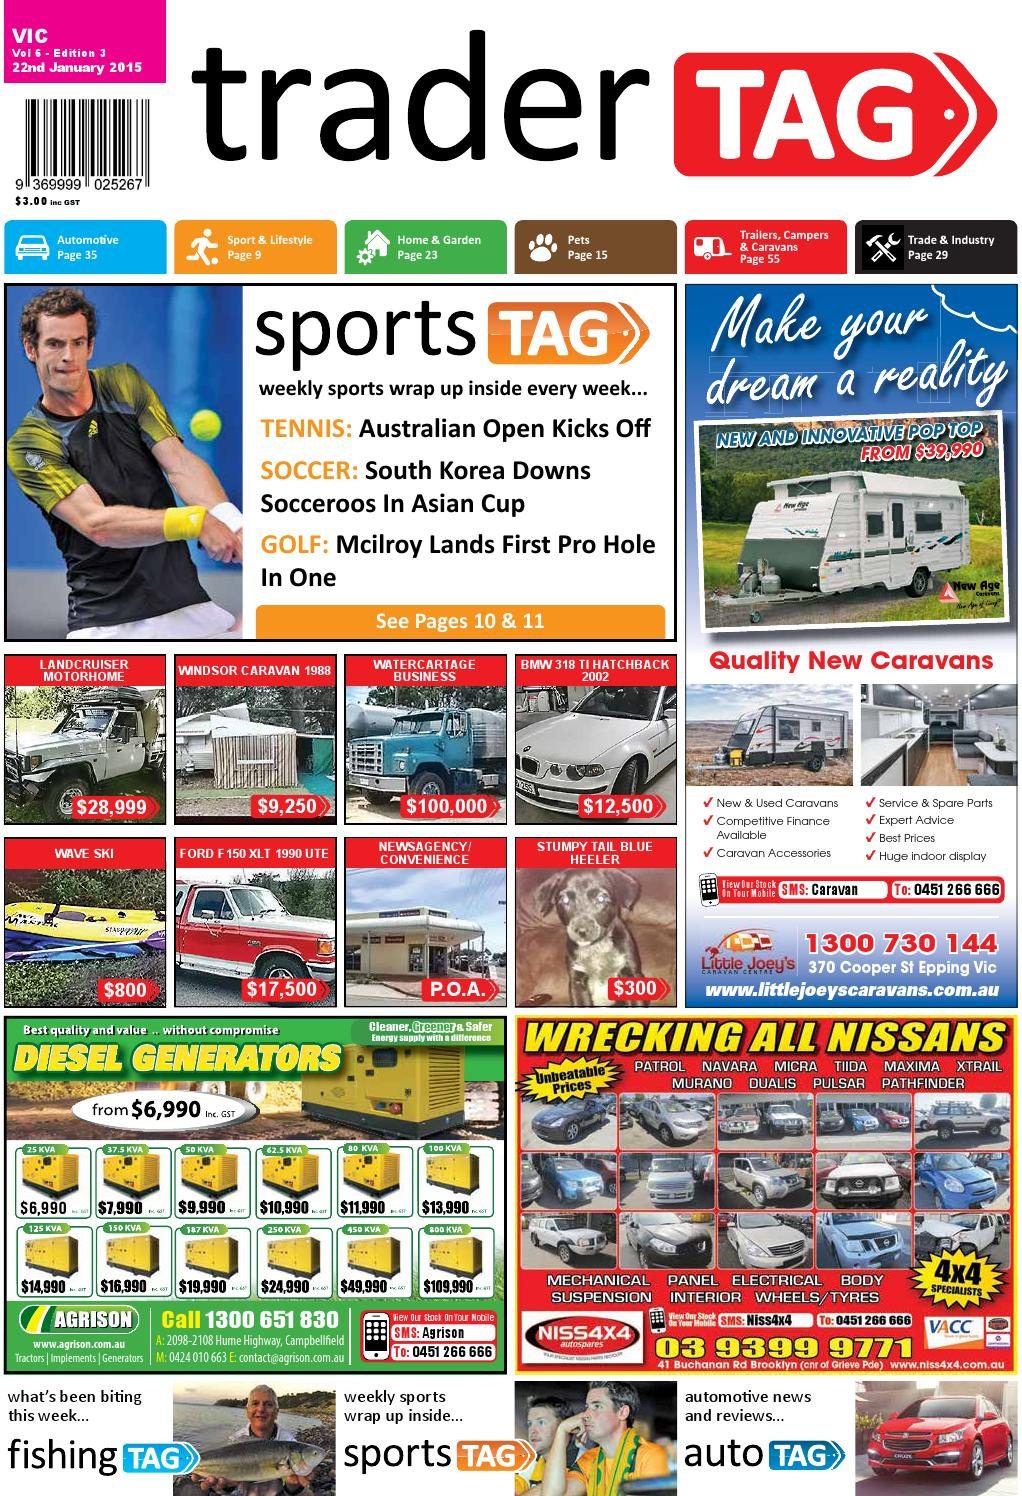 Tradertag Victoria Edition 03 2015 By Design Issuu Additionally Alternator Wiring Diagram On Mazda Tribute Frame